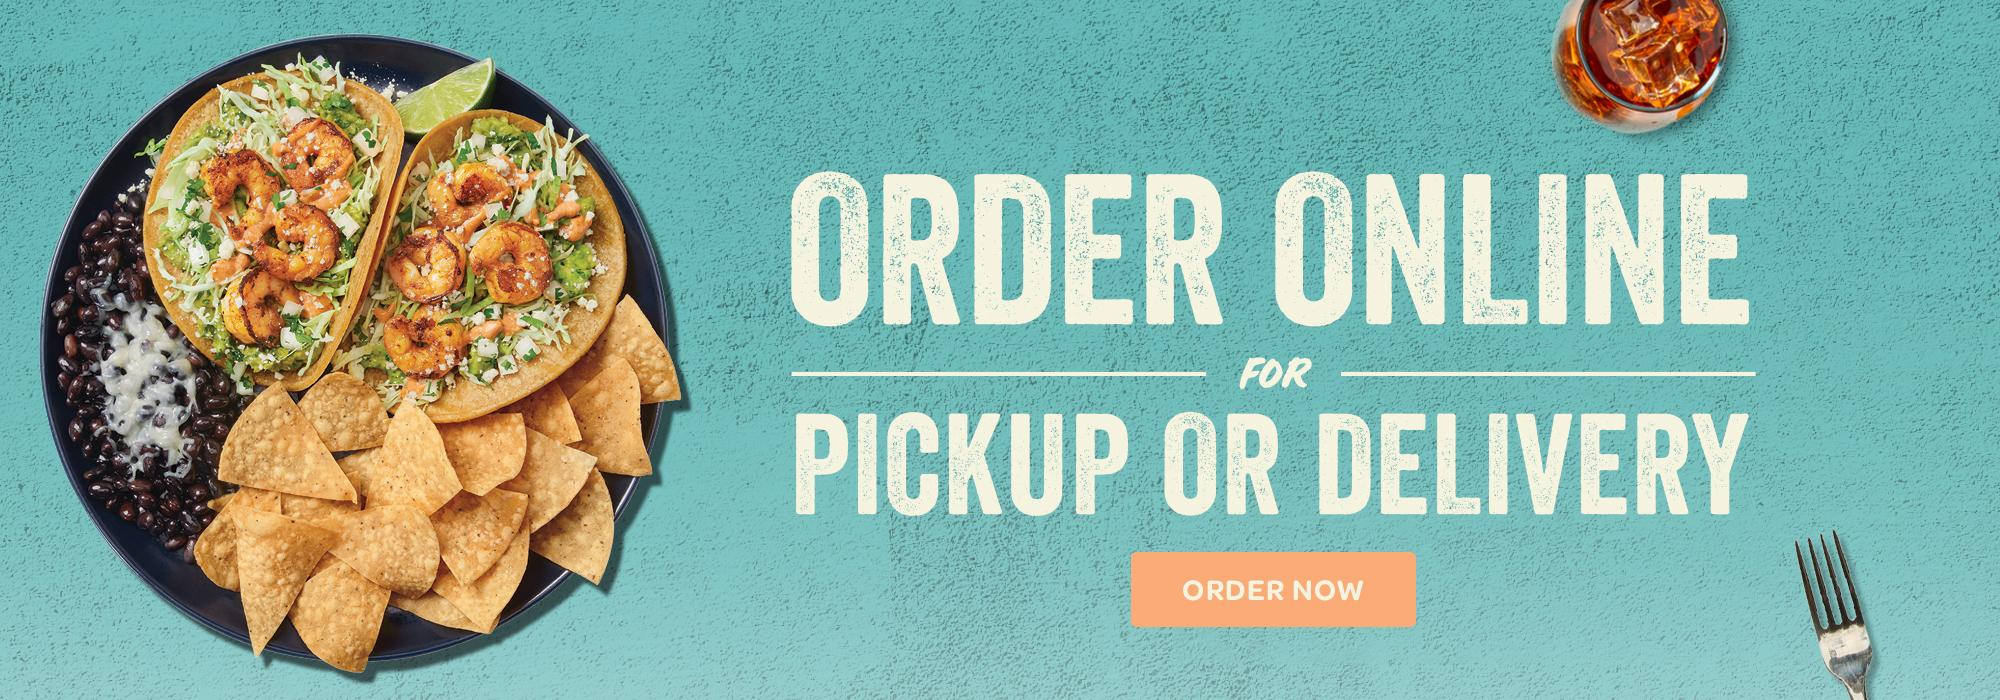 Order Online at rubios.com